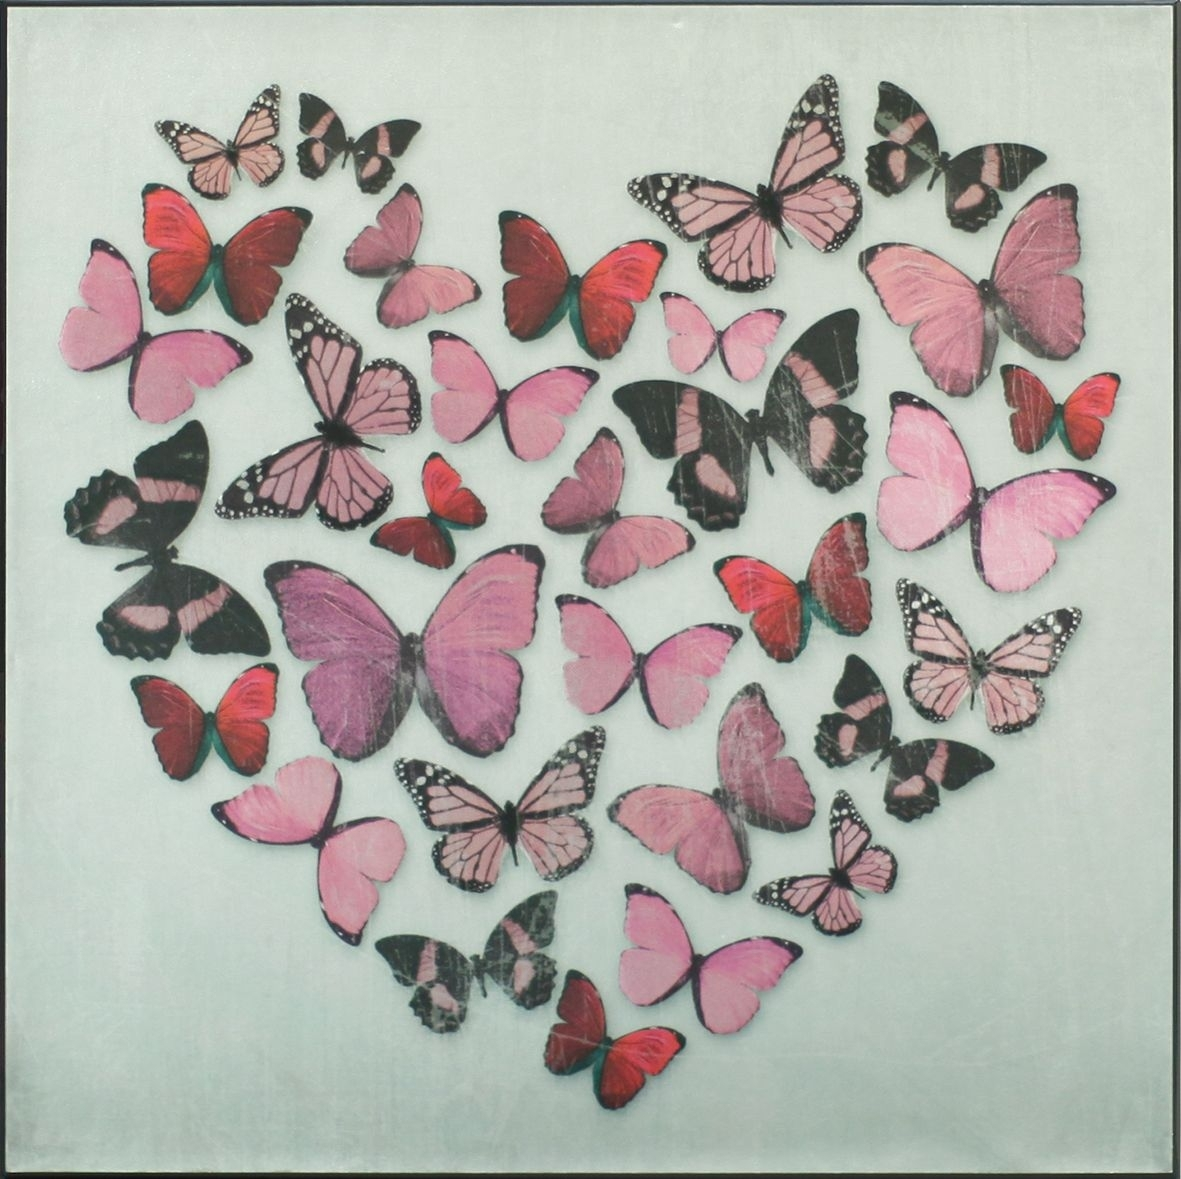 Butterfly Love Pink Superfoil Canvasarthouse : Wallpaper Direct Pertaining To 2017 Butterflies Canvas Wall Art (View 4 of 15)